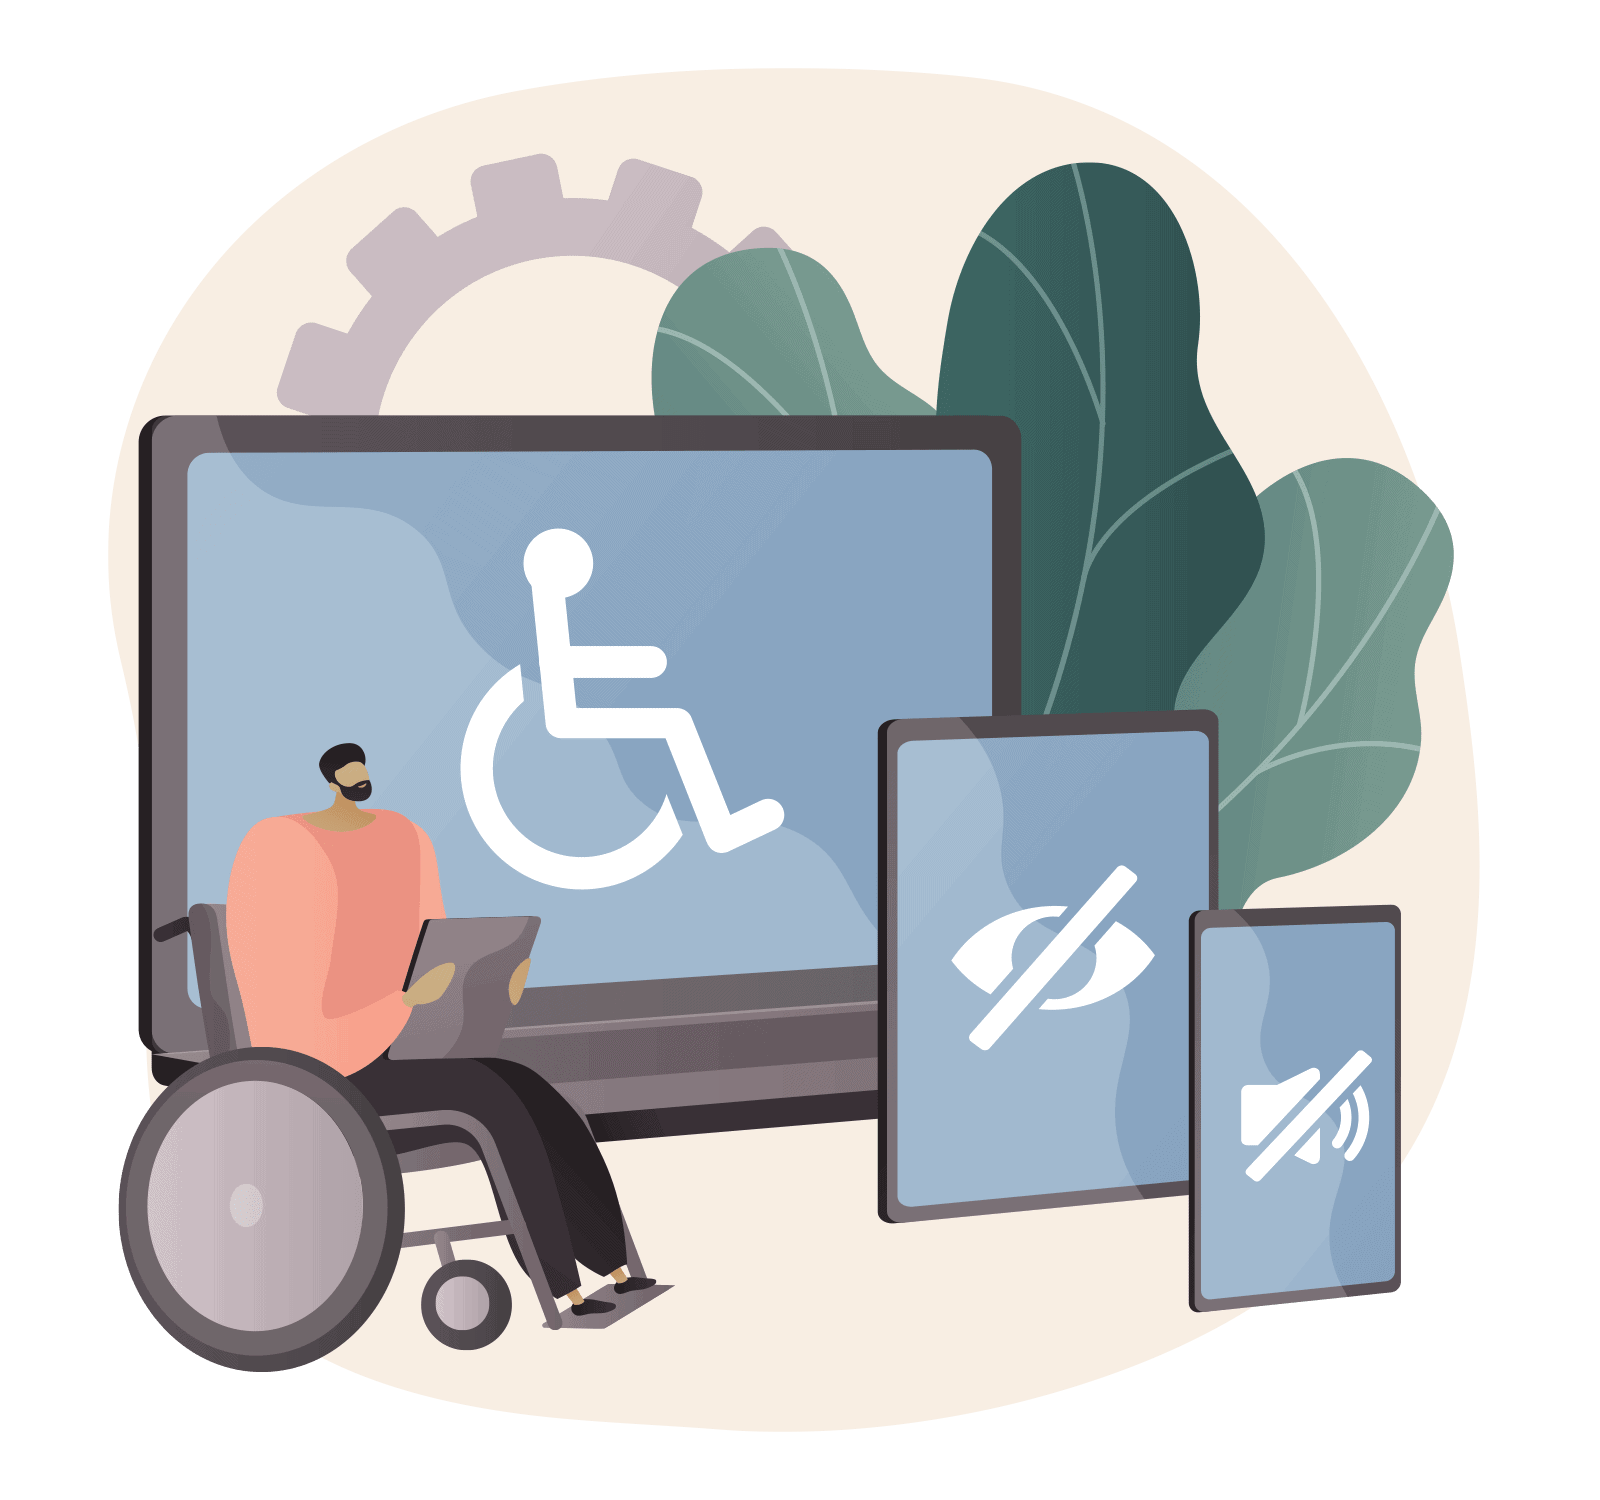 website accessability - guy in wheelchair with screen reader